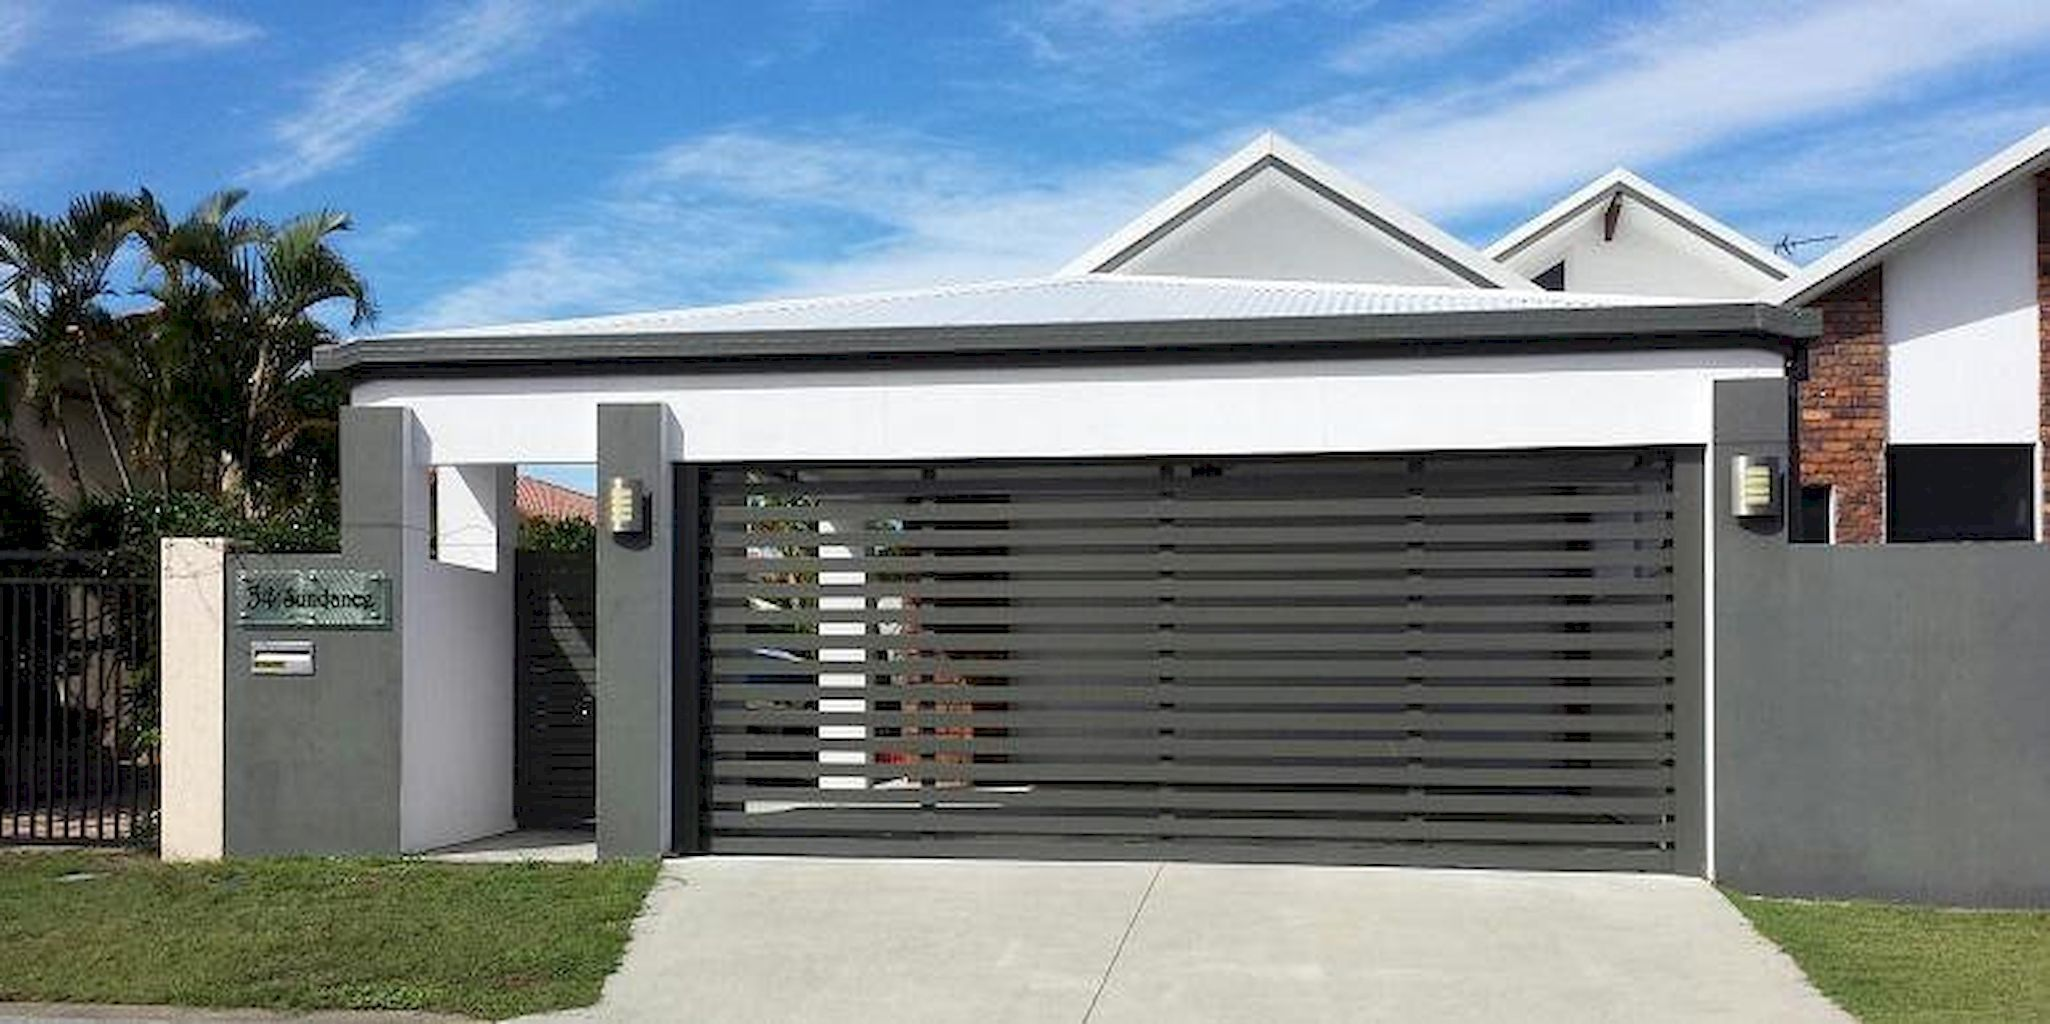 55 adorable modern carports garage designs ideas modern for Garage with carport designs